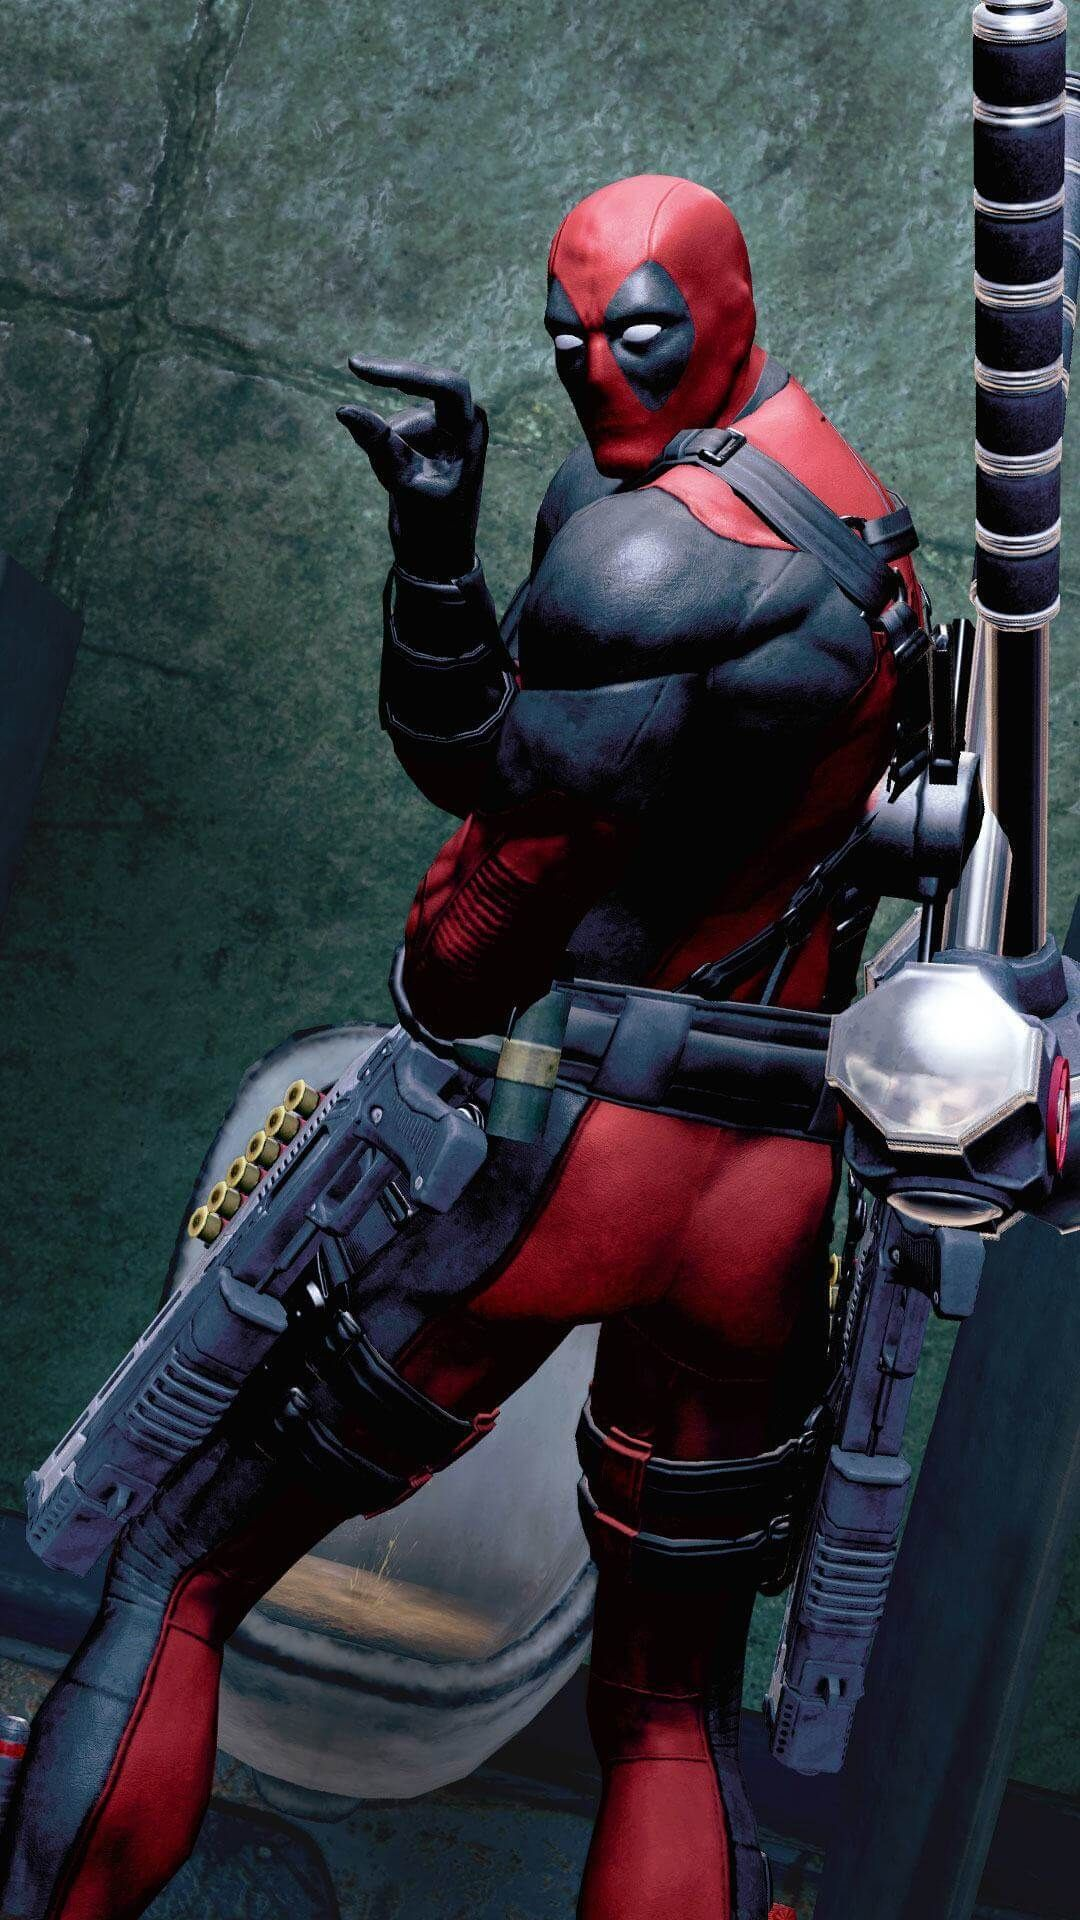 Iphone X 4k Wallpaper Deadpool Deadpool Wallpaper Deadpool Funny Deadpool Wallpaper Funny